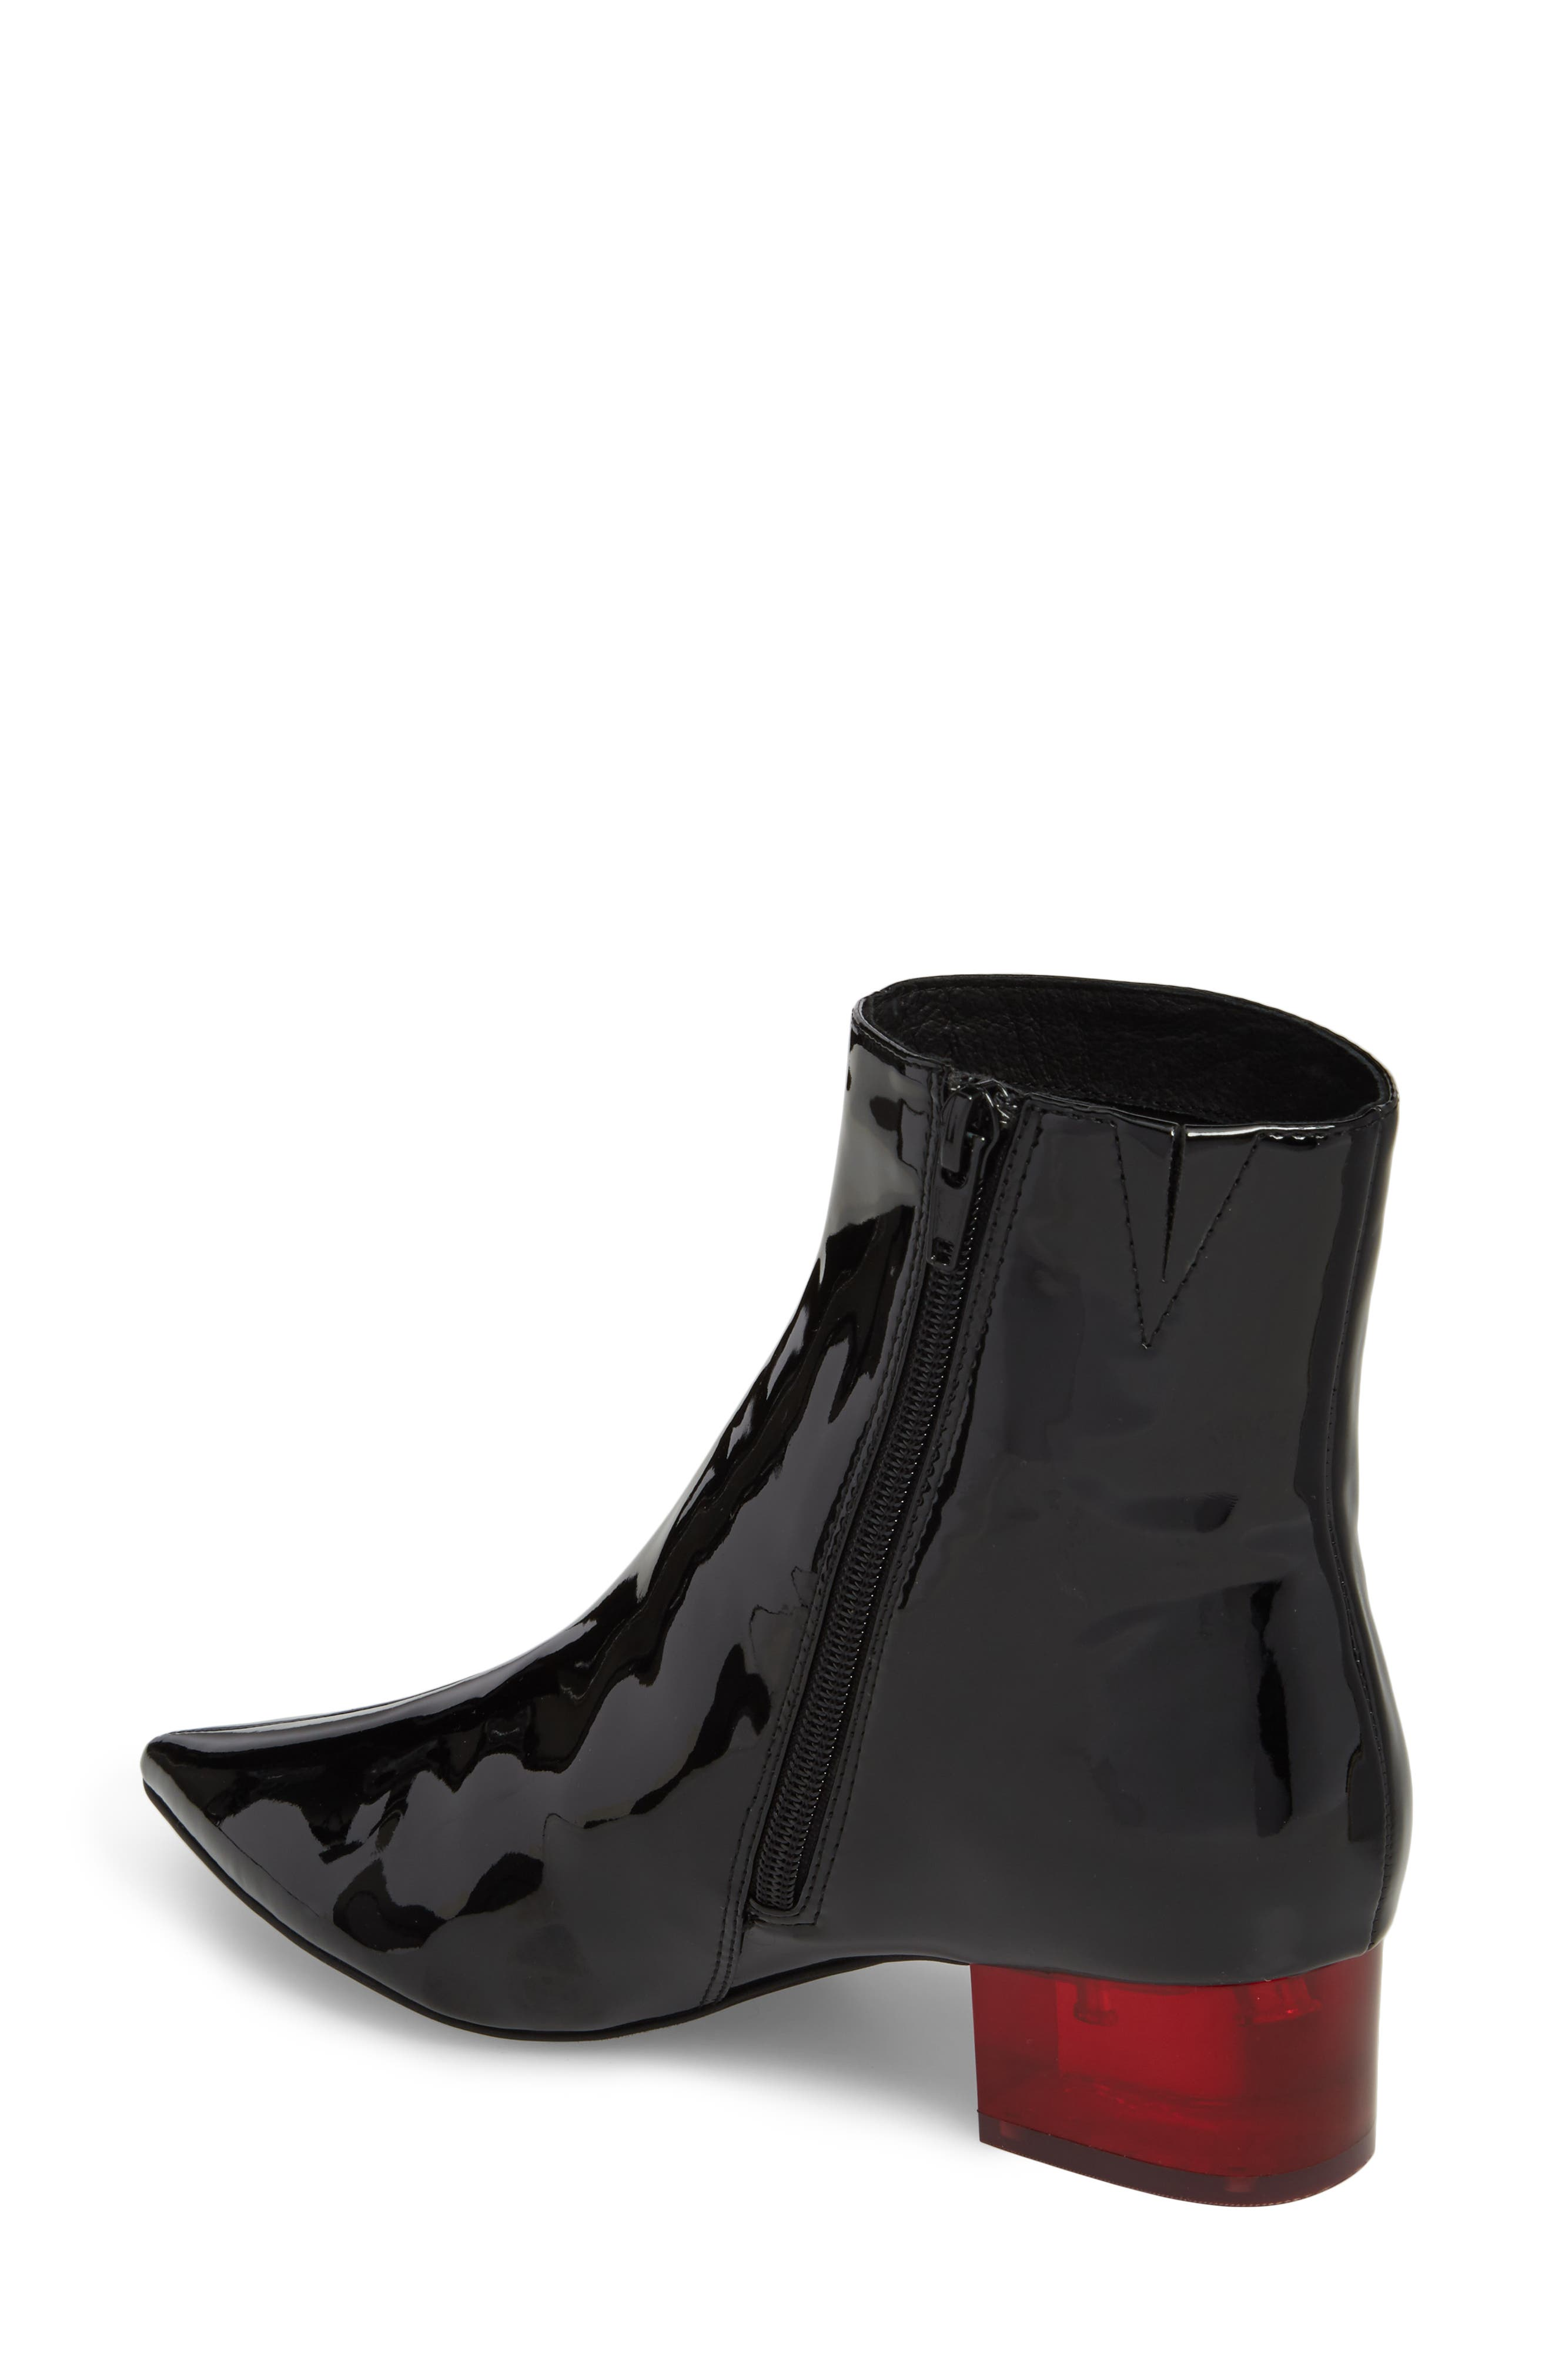 Luminous Statement Heel Bootie,                             Alternate thumbnail 2, color,                             Black/ Red Patent Leather